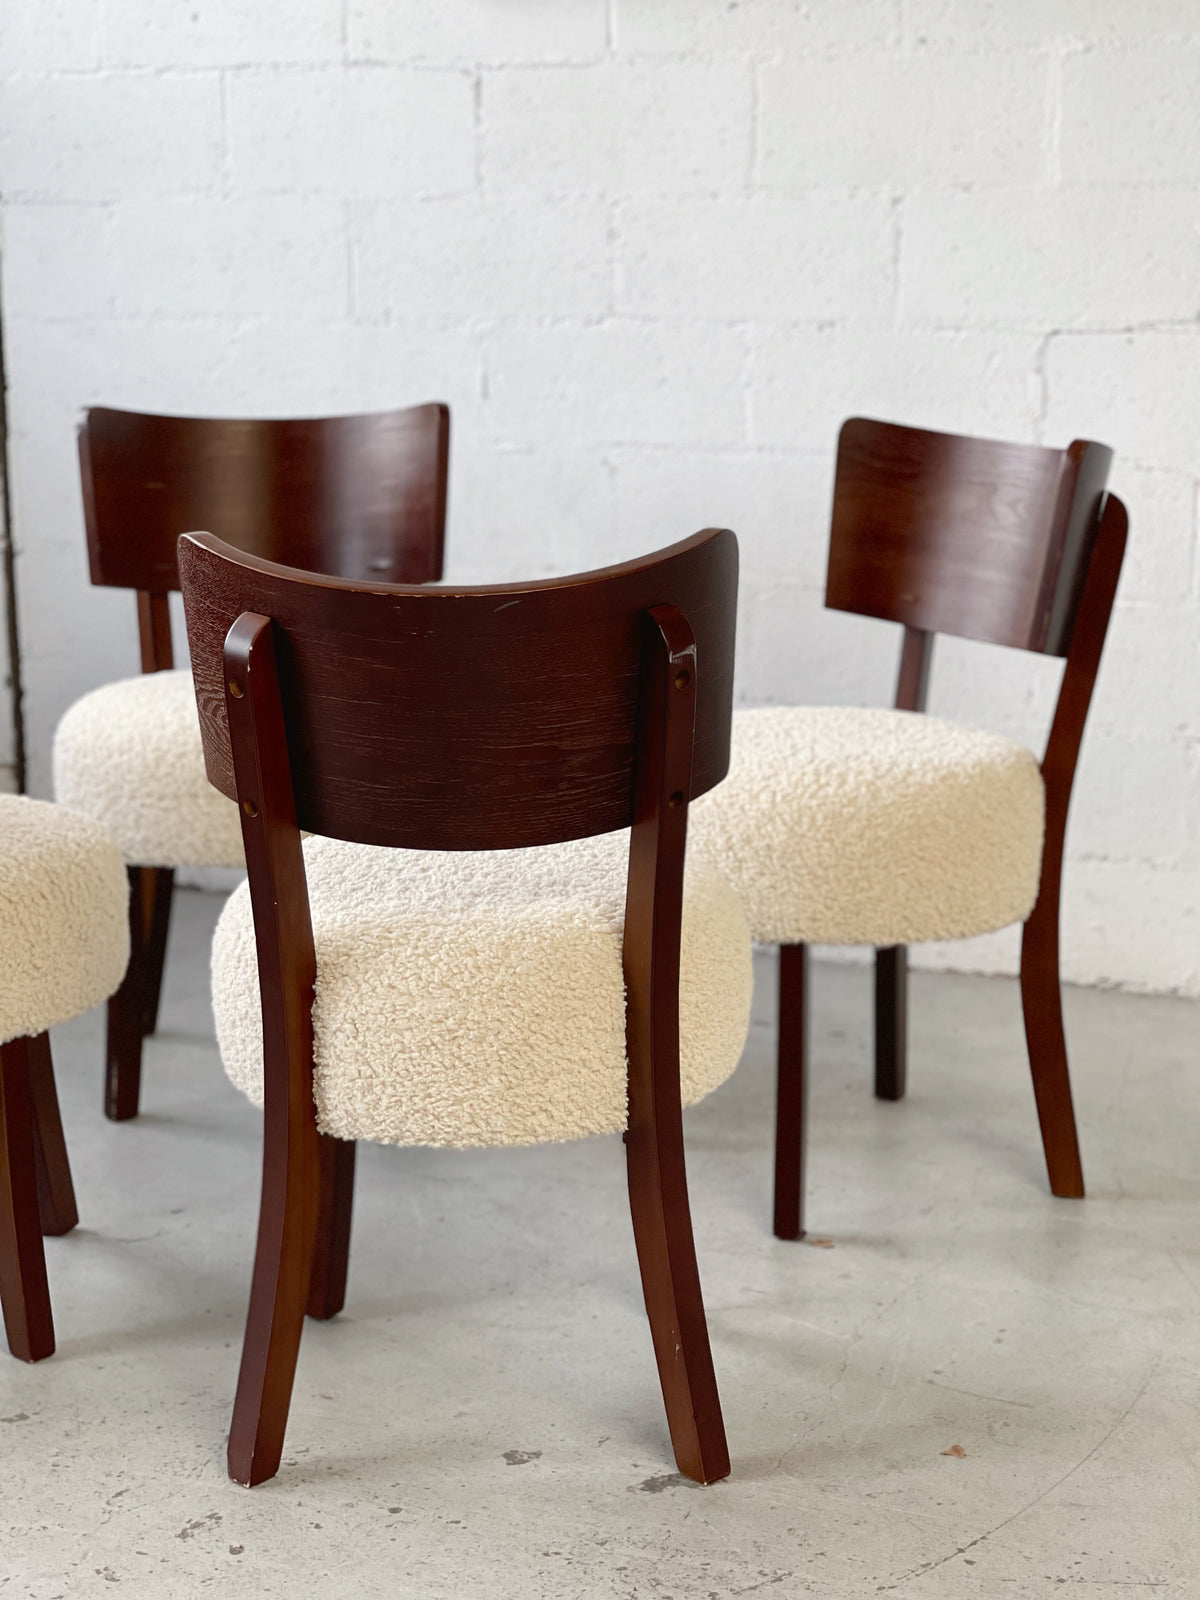 Wooden Boucle Dining Chair - Price is Per Chair